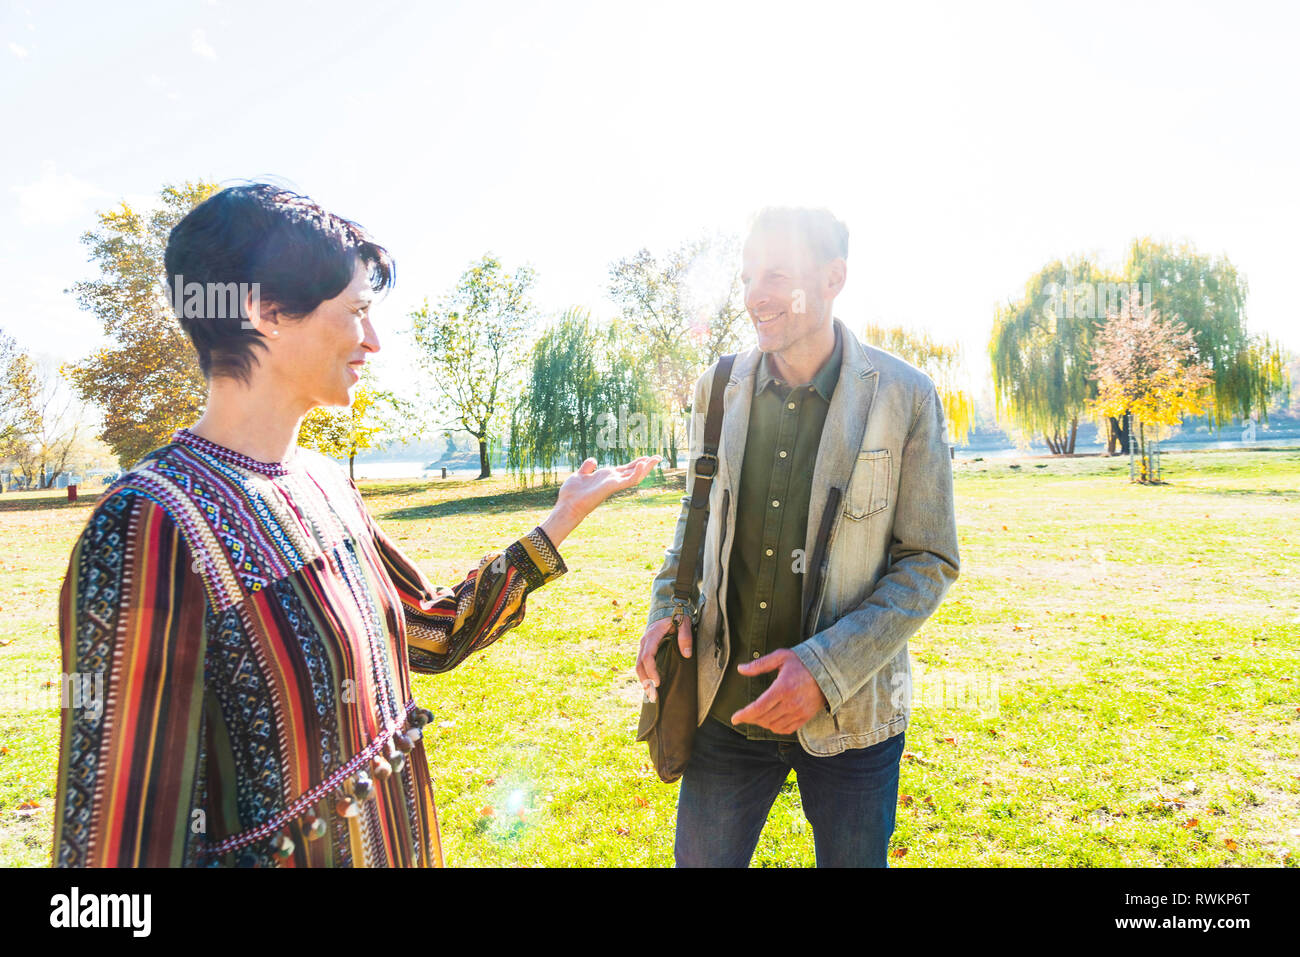 Couple teasing each other in park, Strandbad, Mannheim, Germany - Stock Image